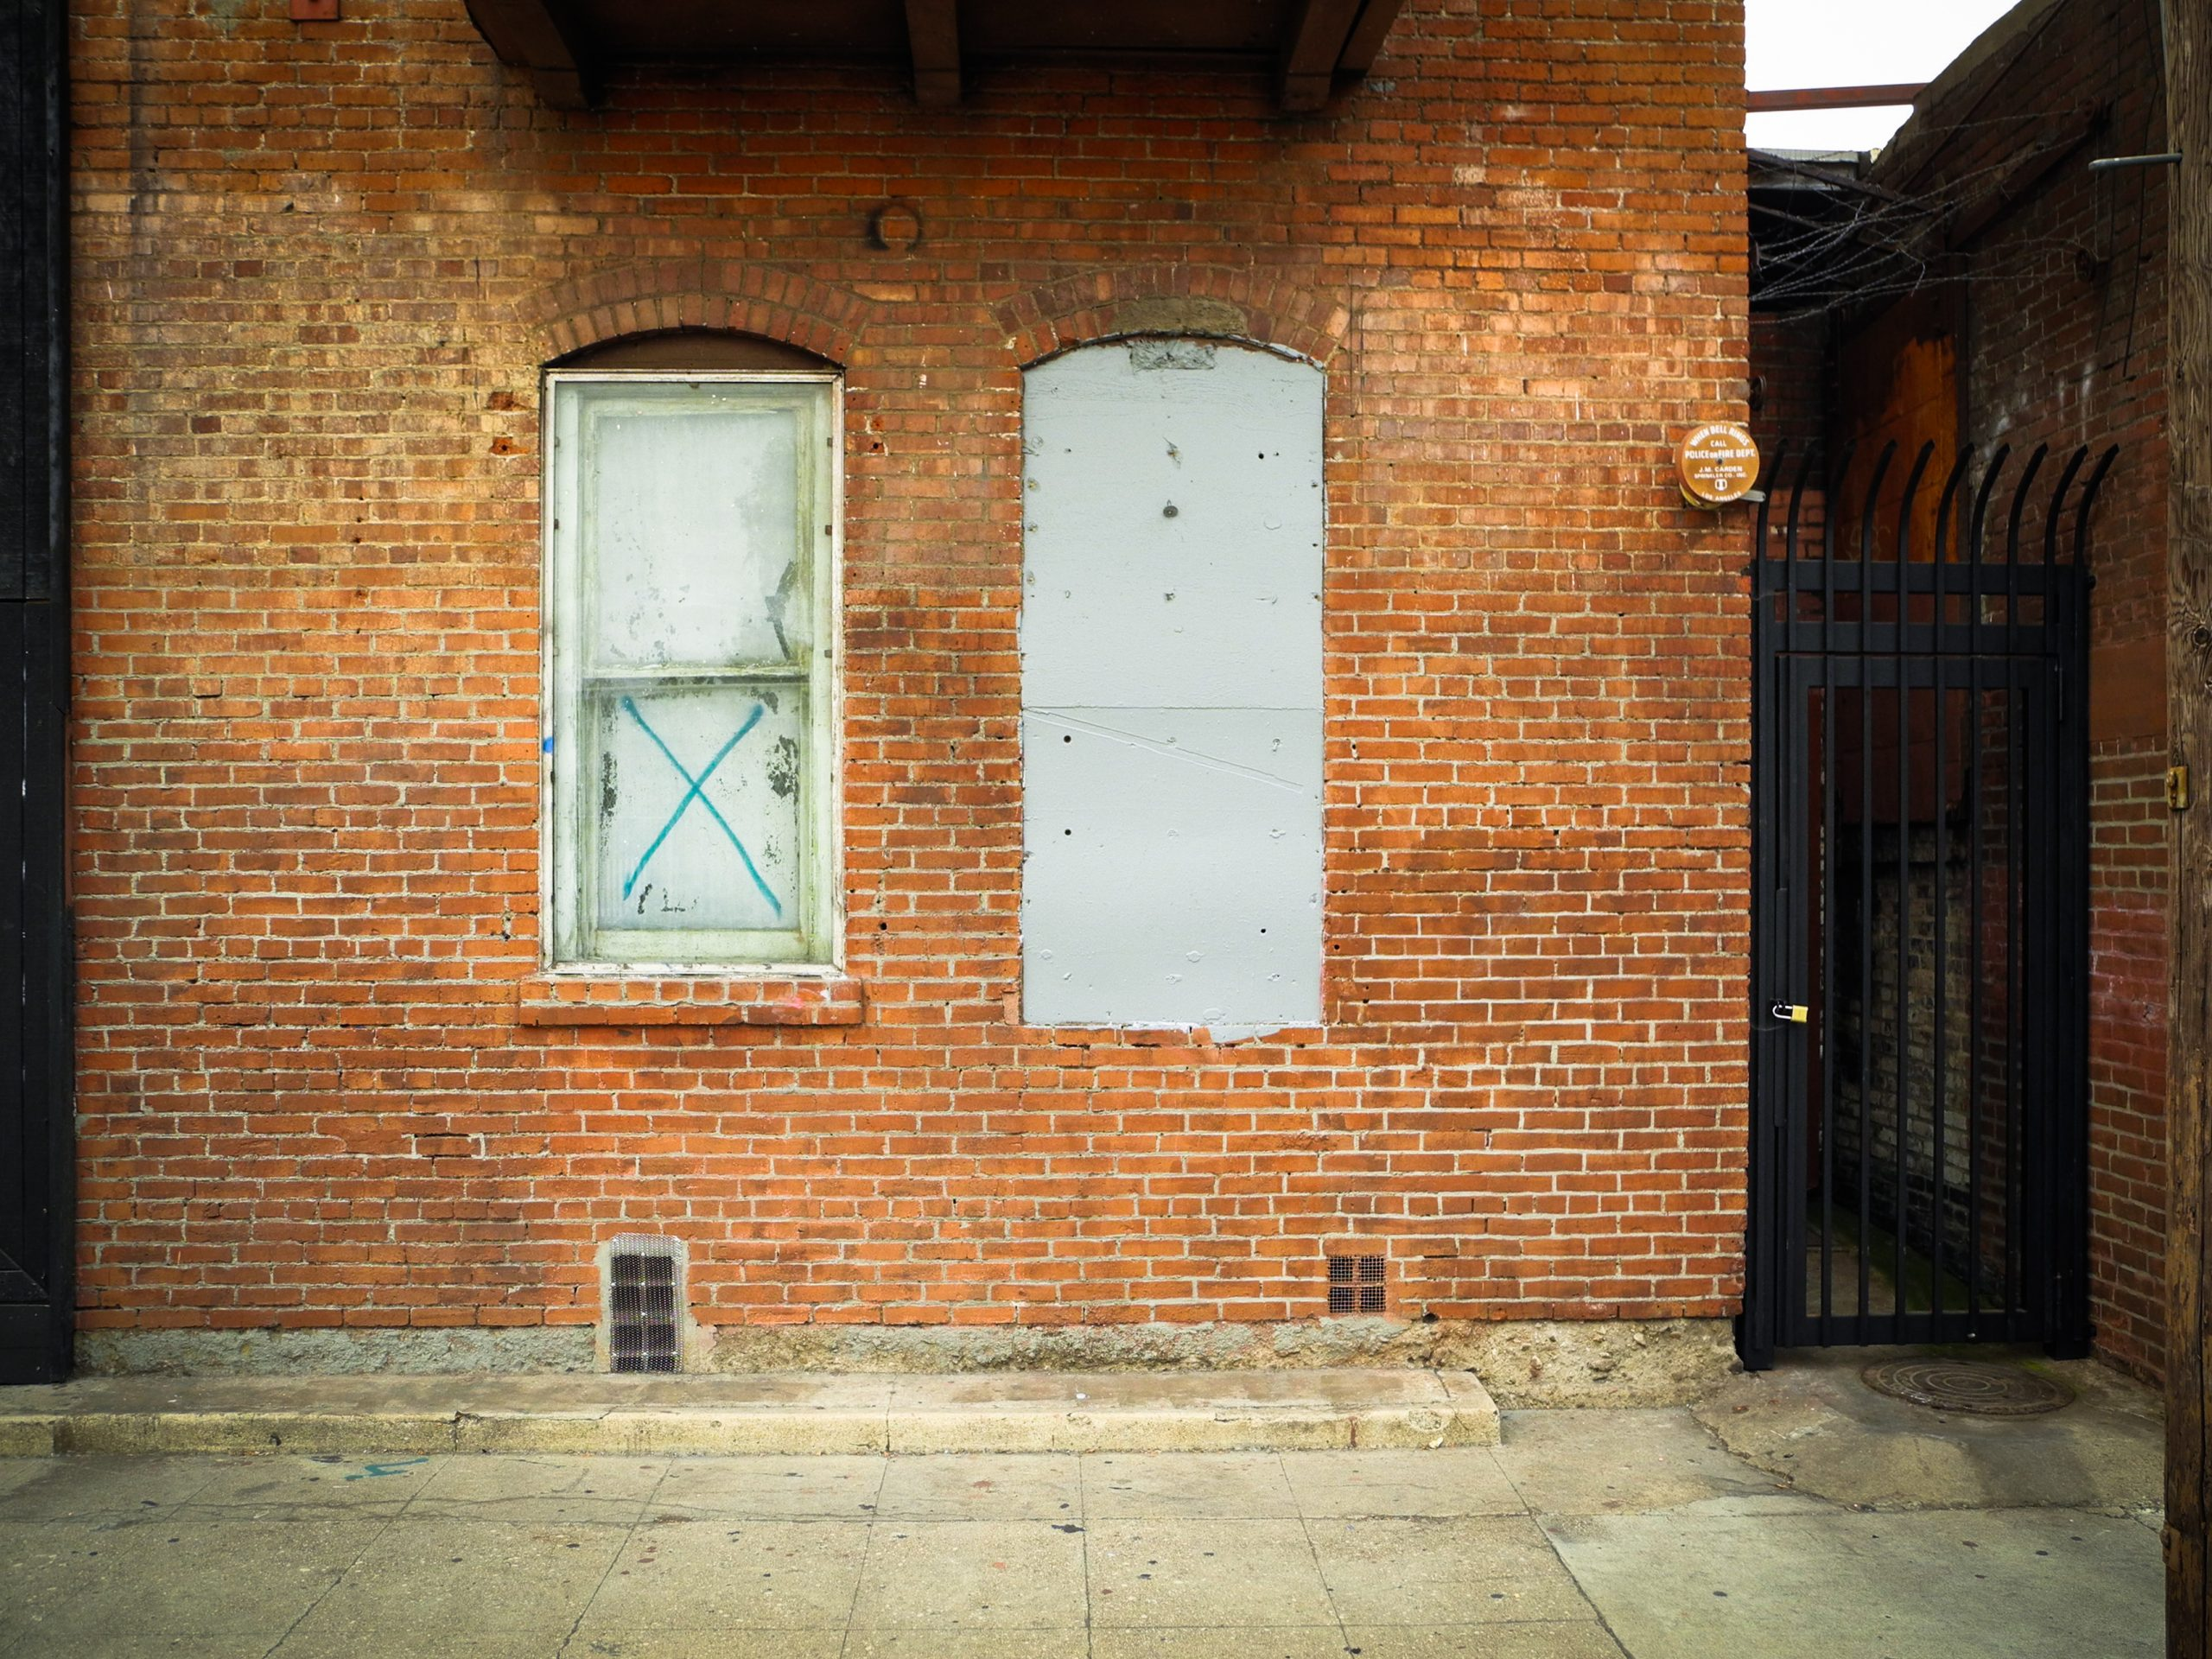 a brick wall with two windows that are shut closed